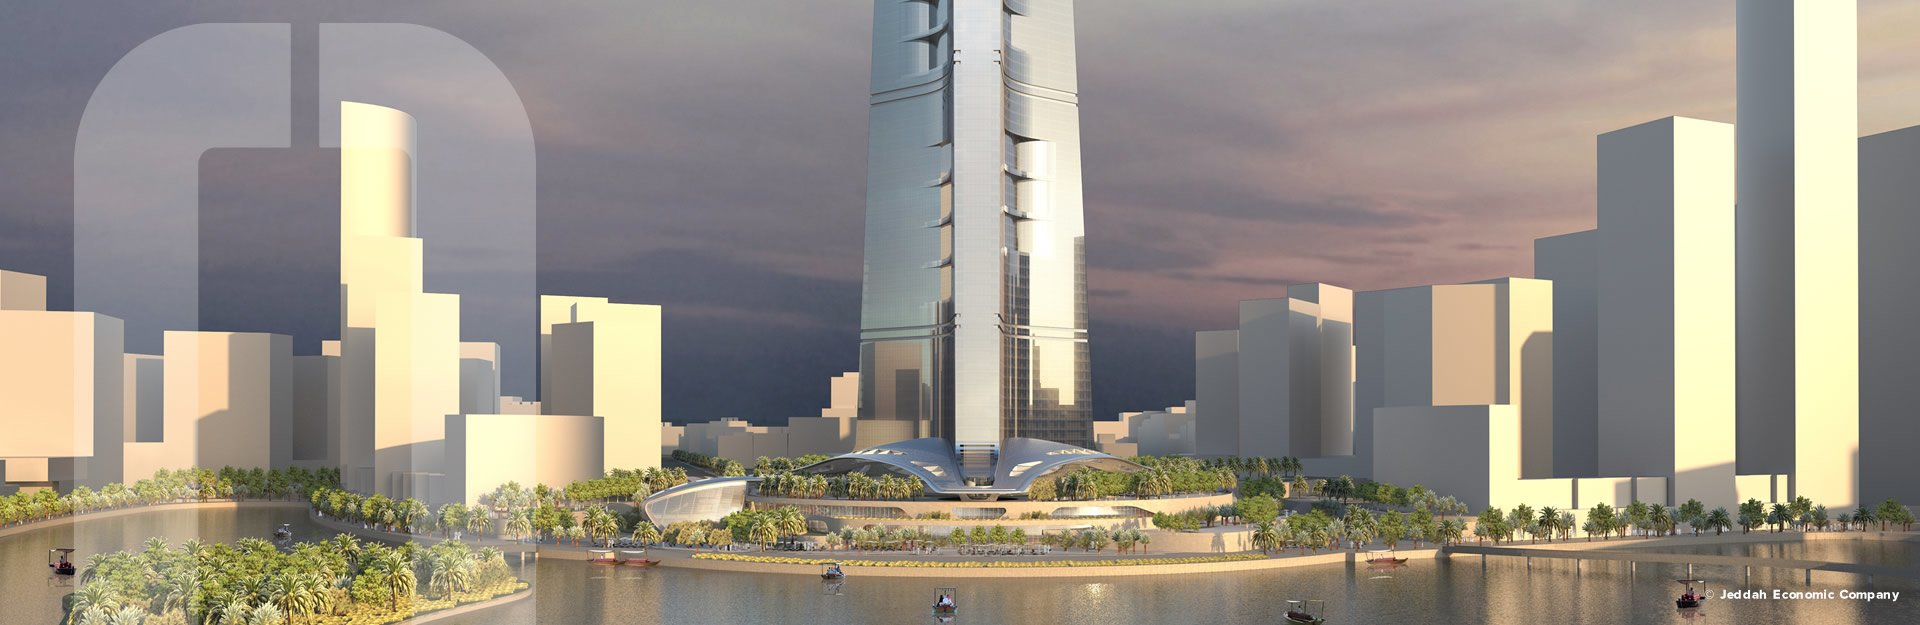 Jeddah Economic Project